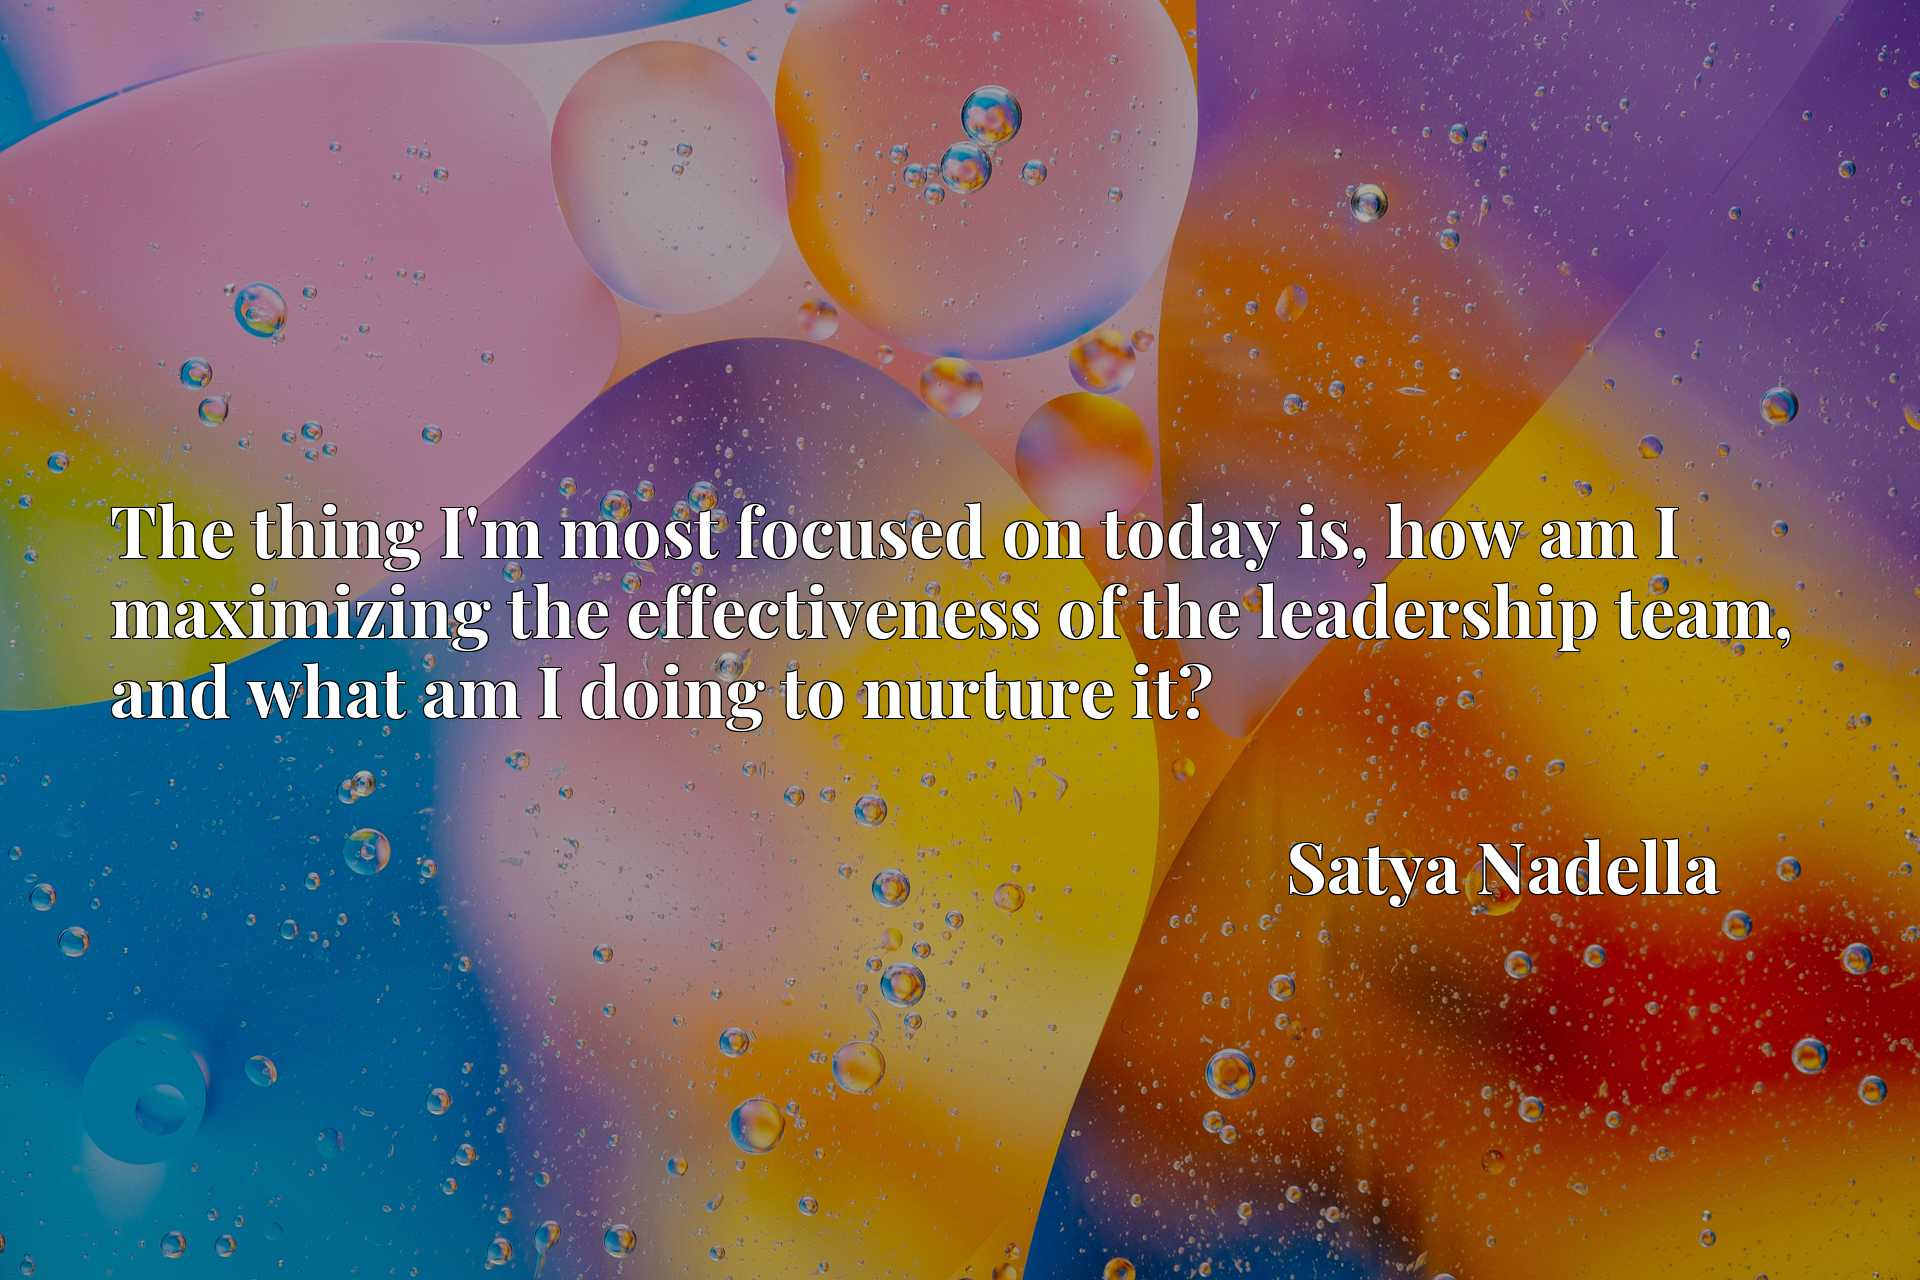 The thing I'm most focused on today is, how am I maximizing the effectiveness of the leadership team, and what am I doing to nurture it?